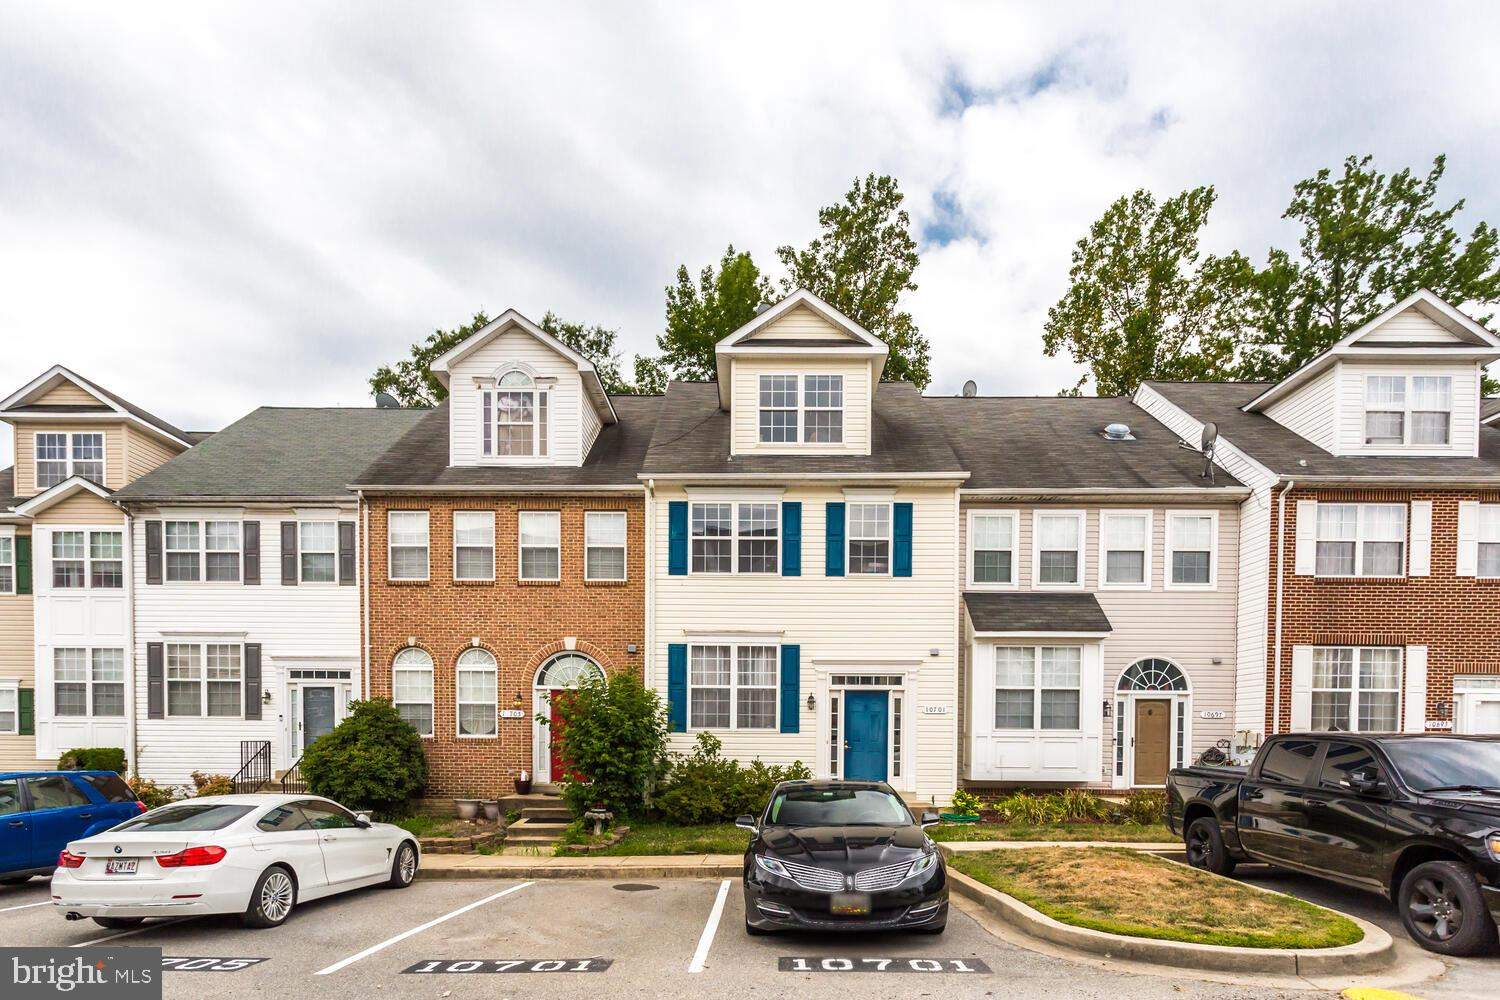 Beautiful 4 level townhouse in close proximity to schools, shopping, and RT210.  3 bedrooms, 3 full